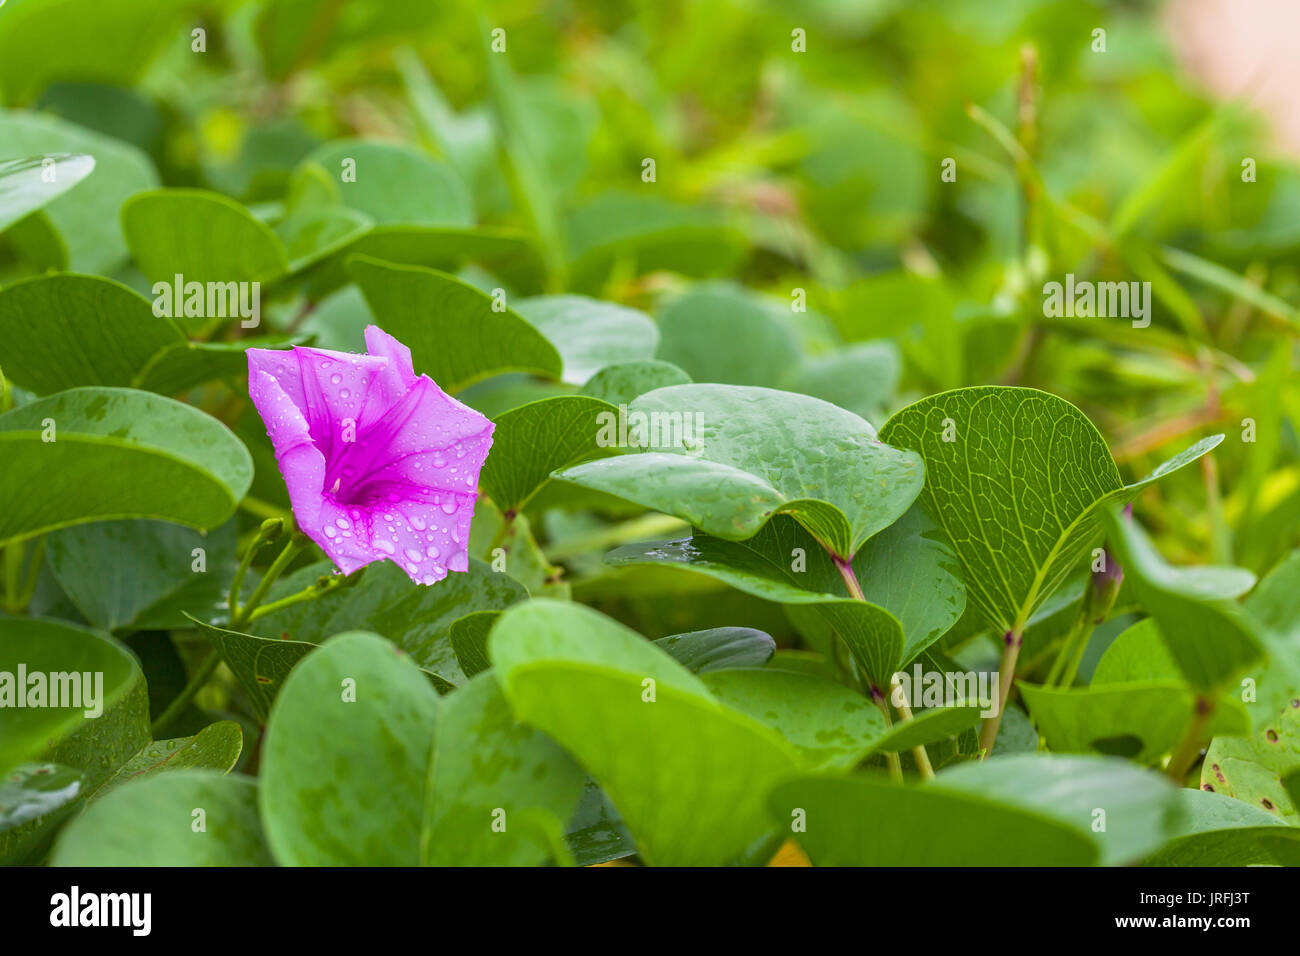 drop of water from rain stuck on flower of beach morning glory Stock Photo